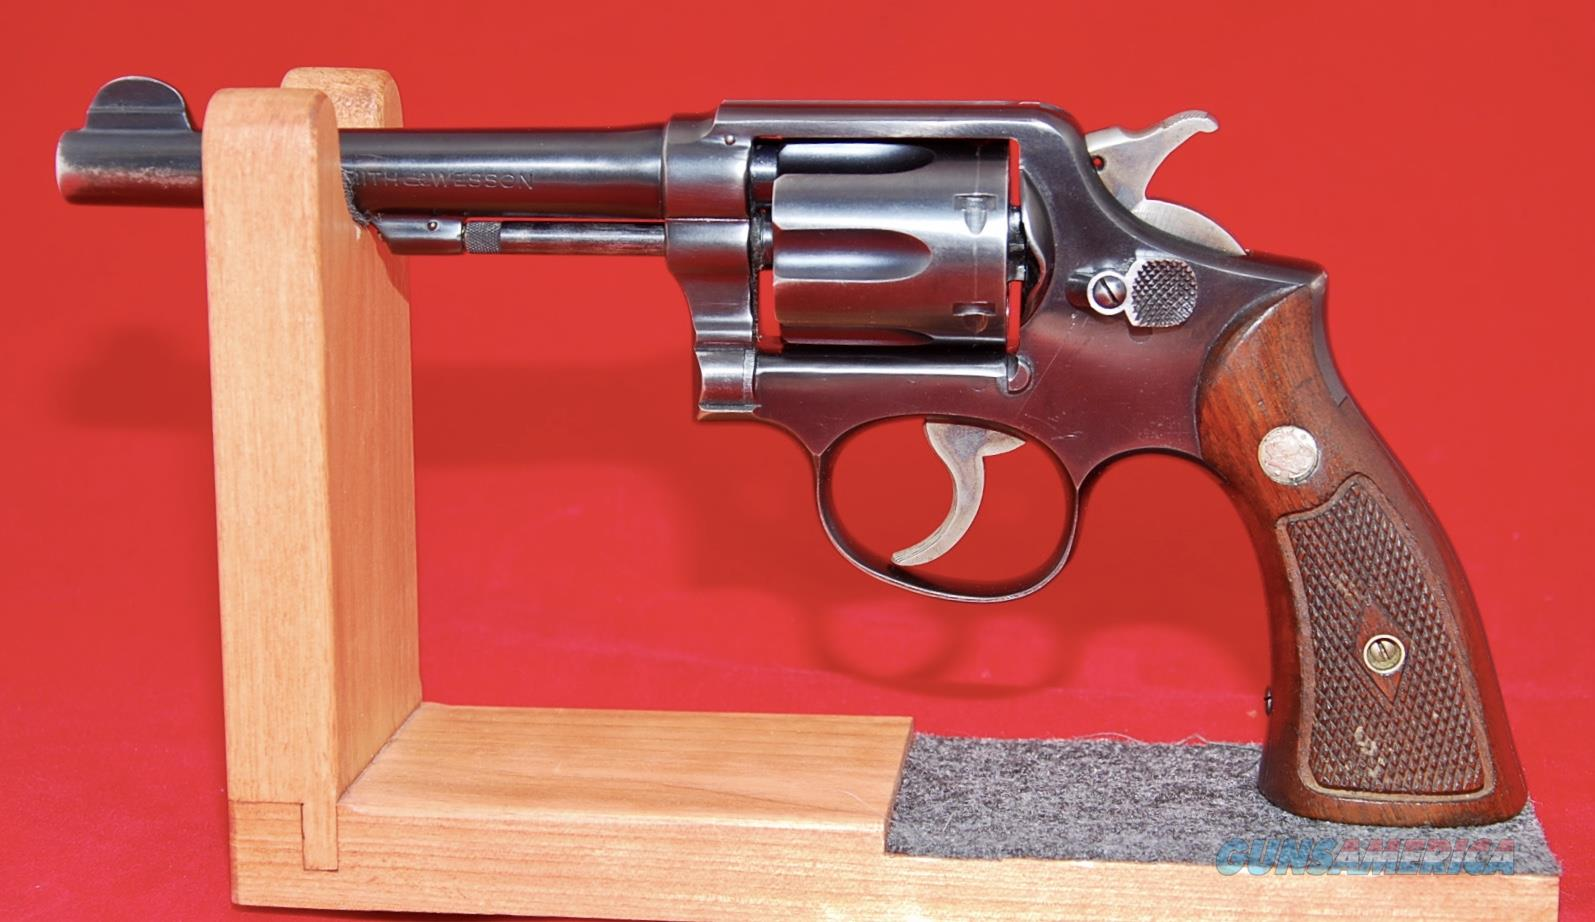 Smith & Wesson Pre Model 10 Military and Police 5 inch Barrel  Guns > Pistols > Smith & Wesson Revolvers > Med. Frame ( K/L )